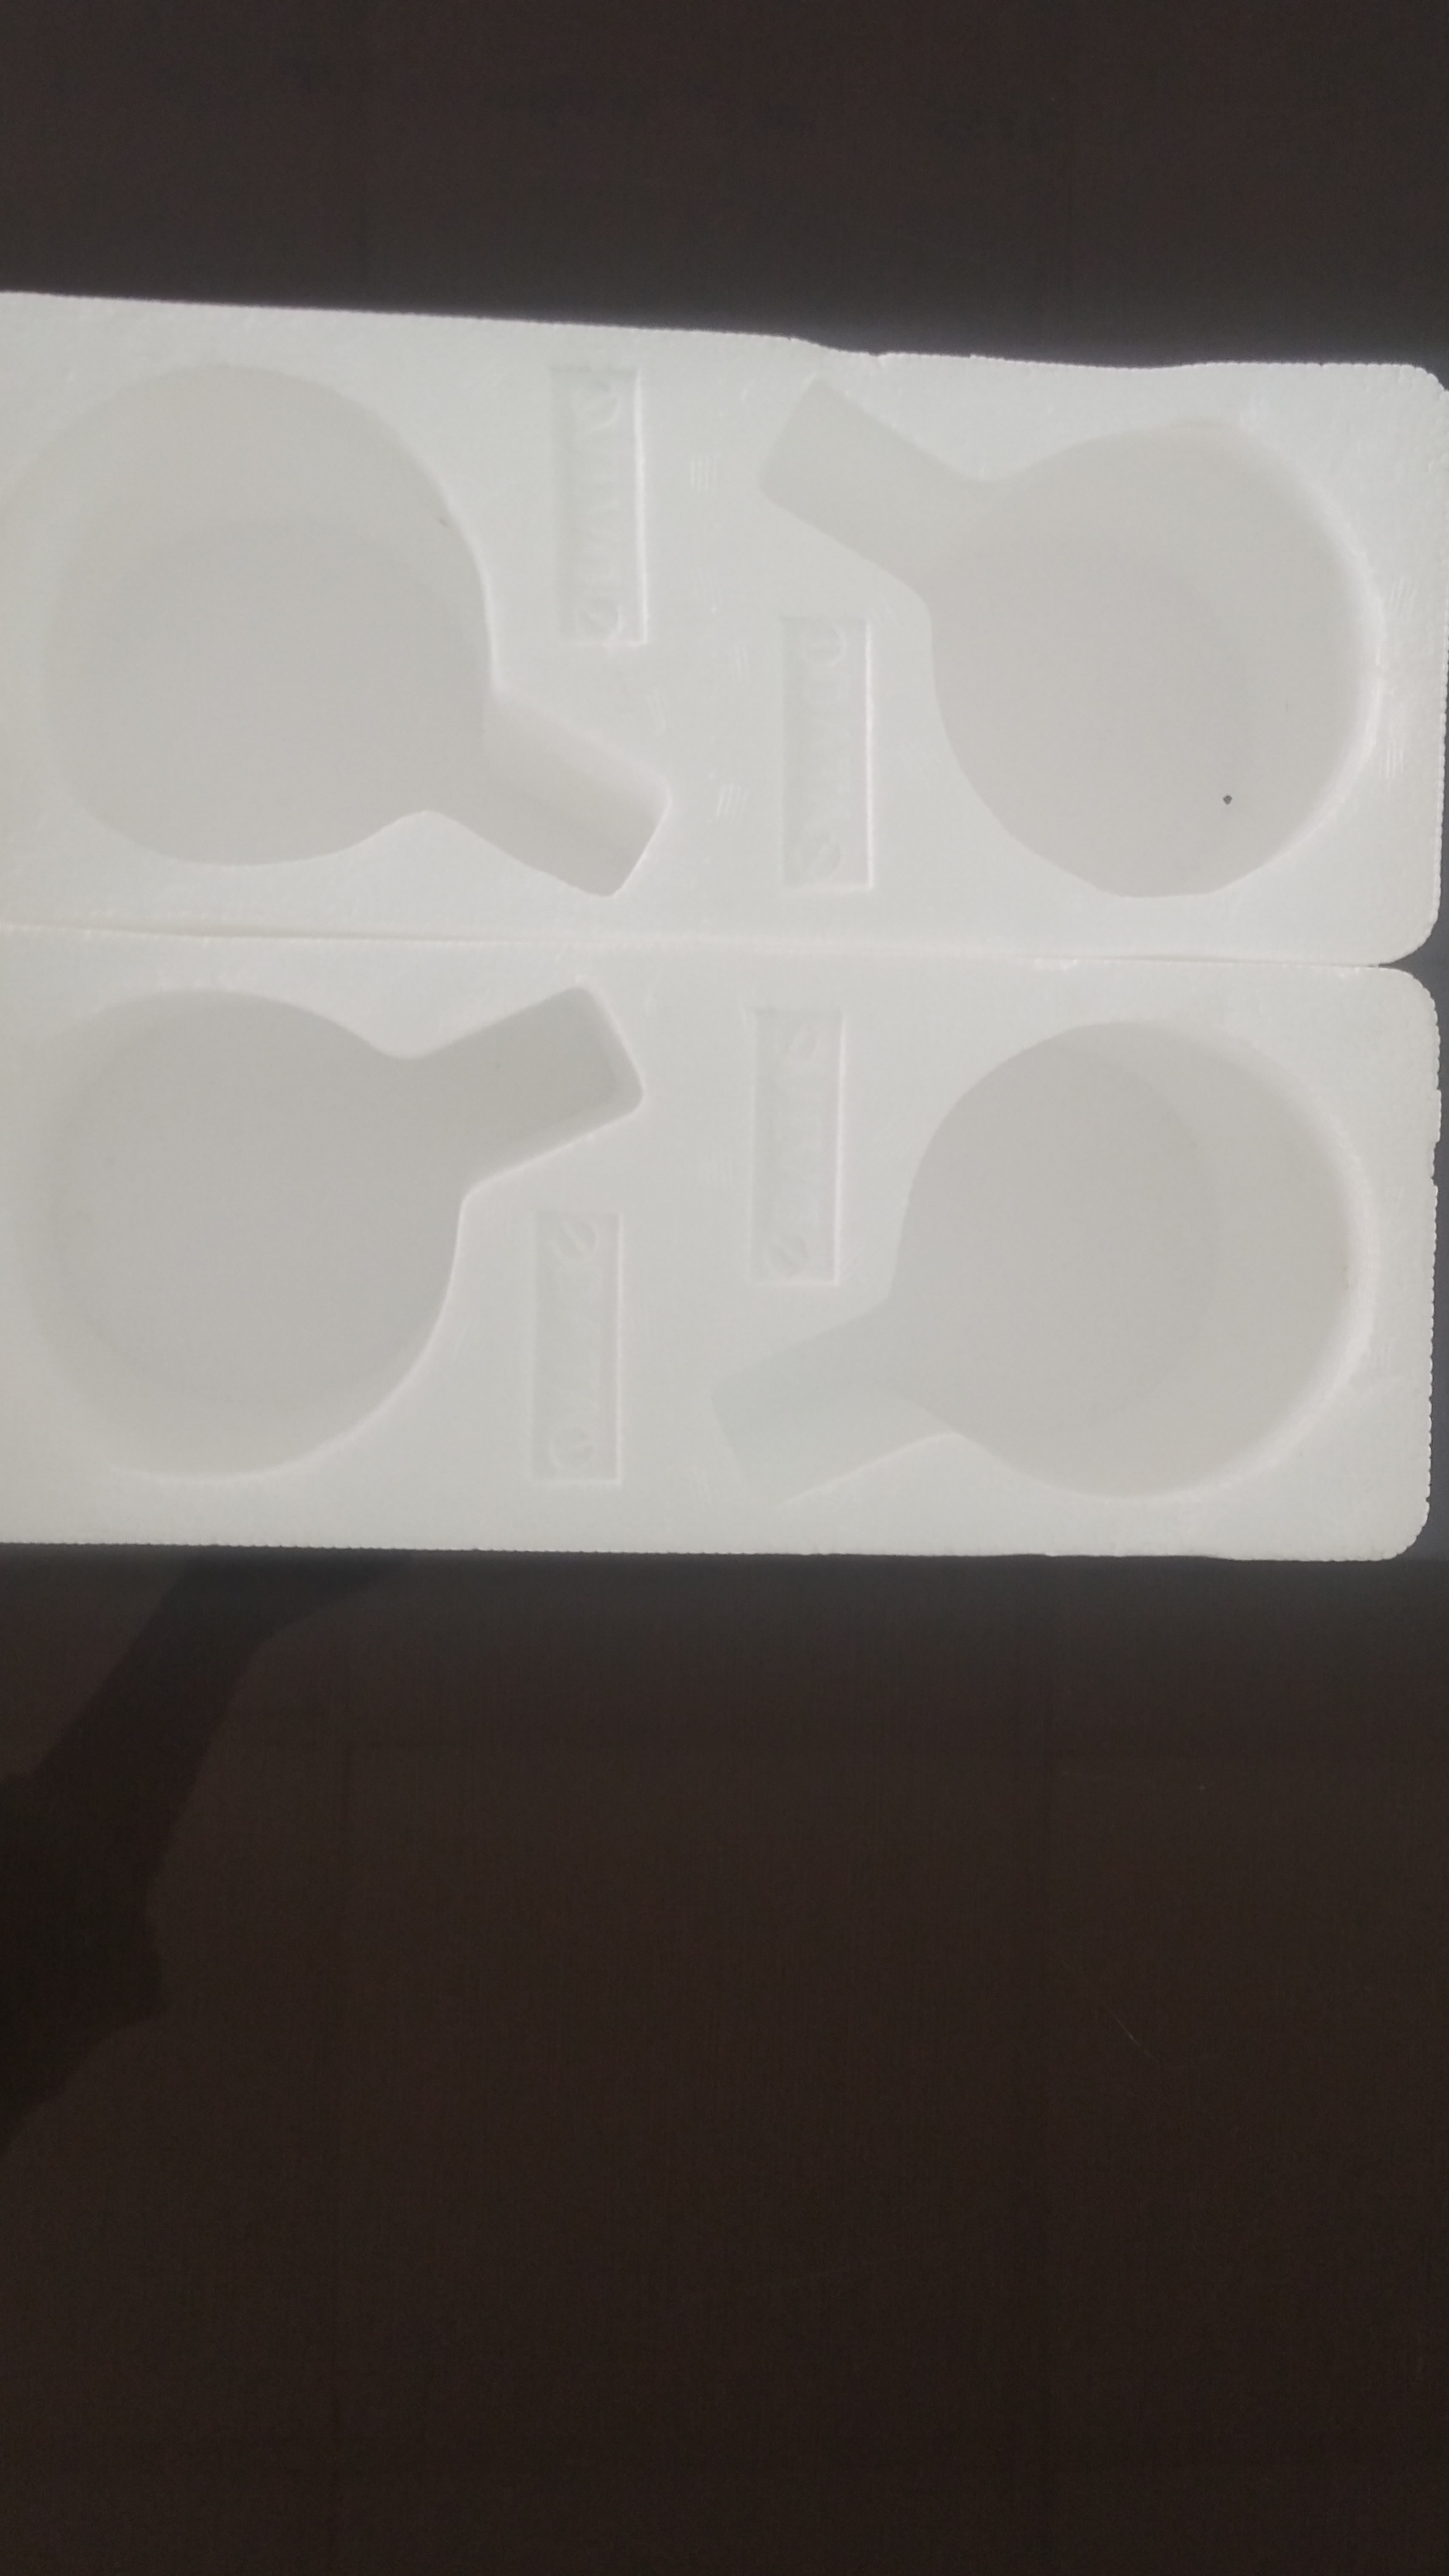 thermocole packaging